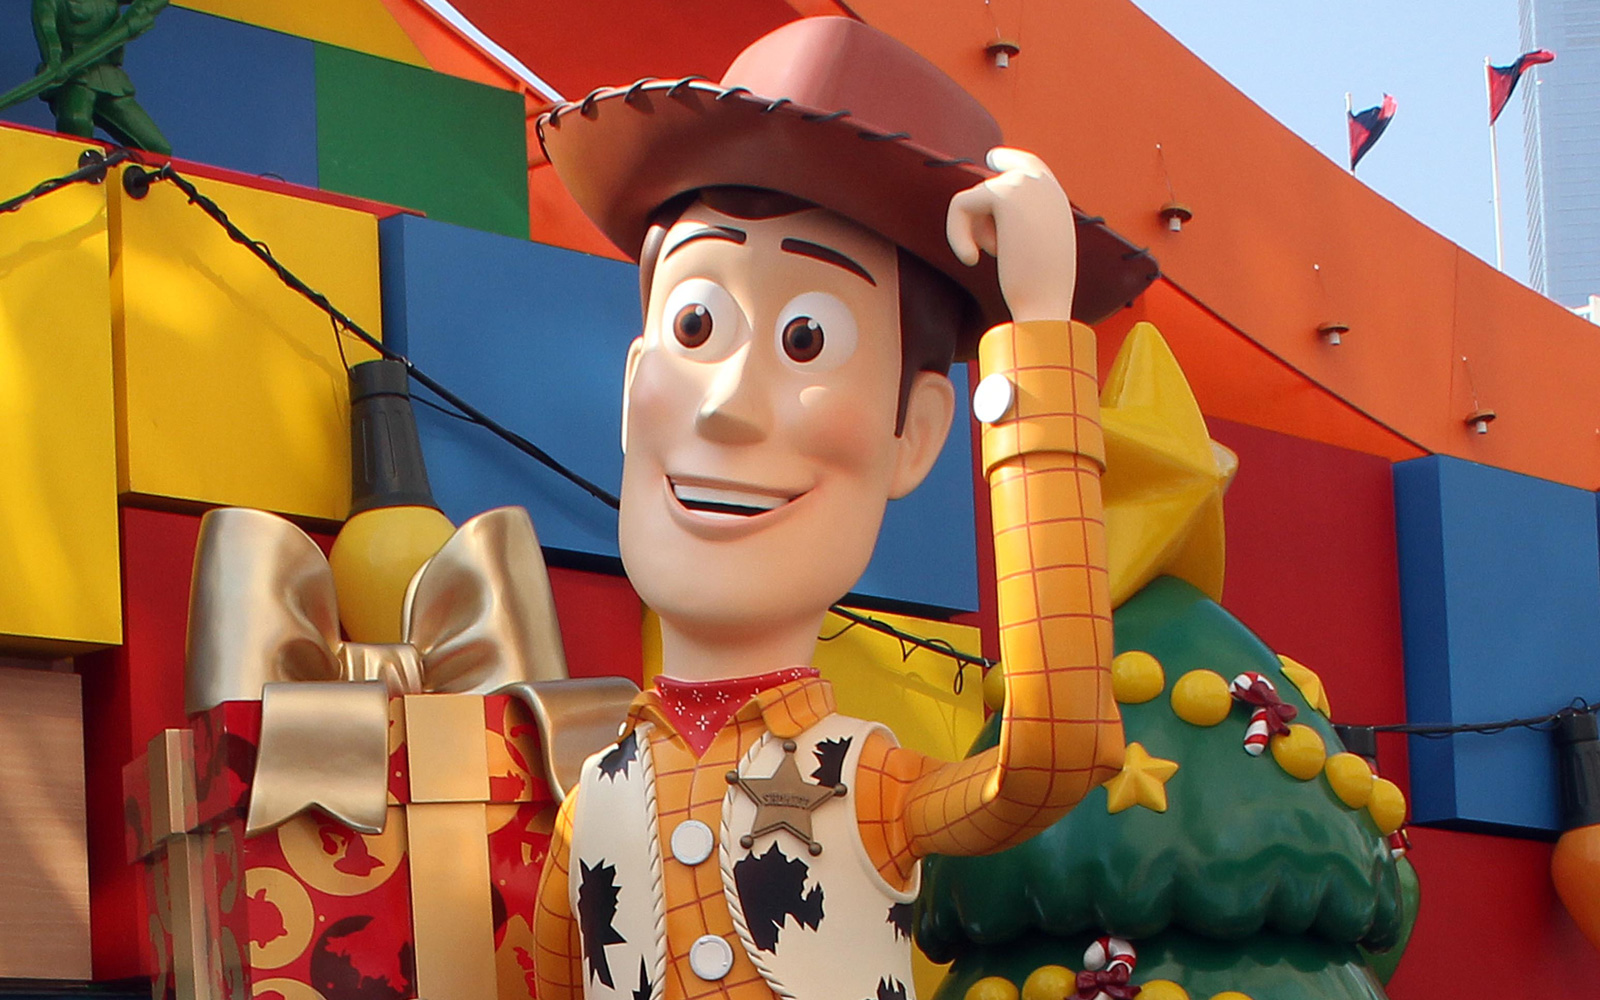 Disneyland's Toy Story characters outside a shopping mall in Hong Kong on November 5, 2011.